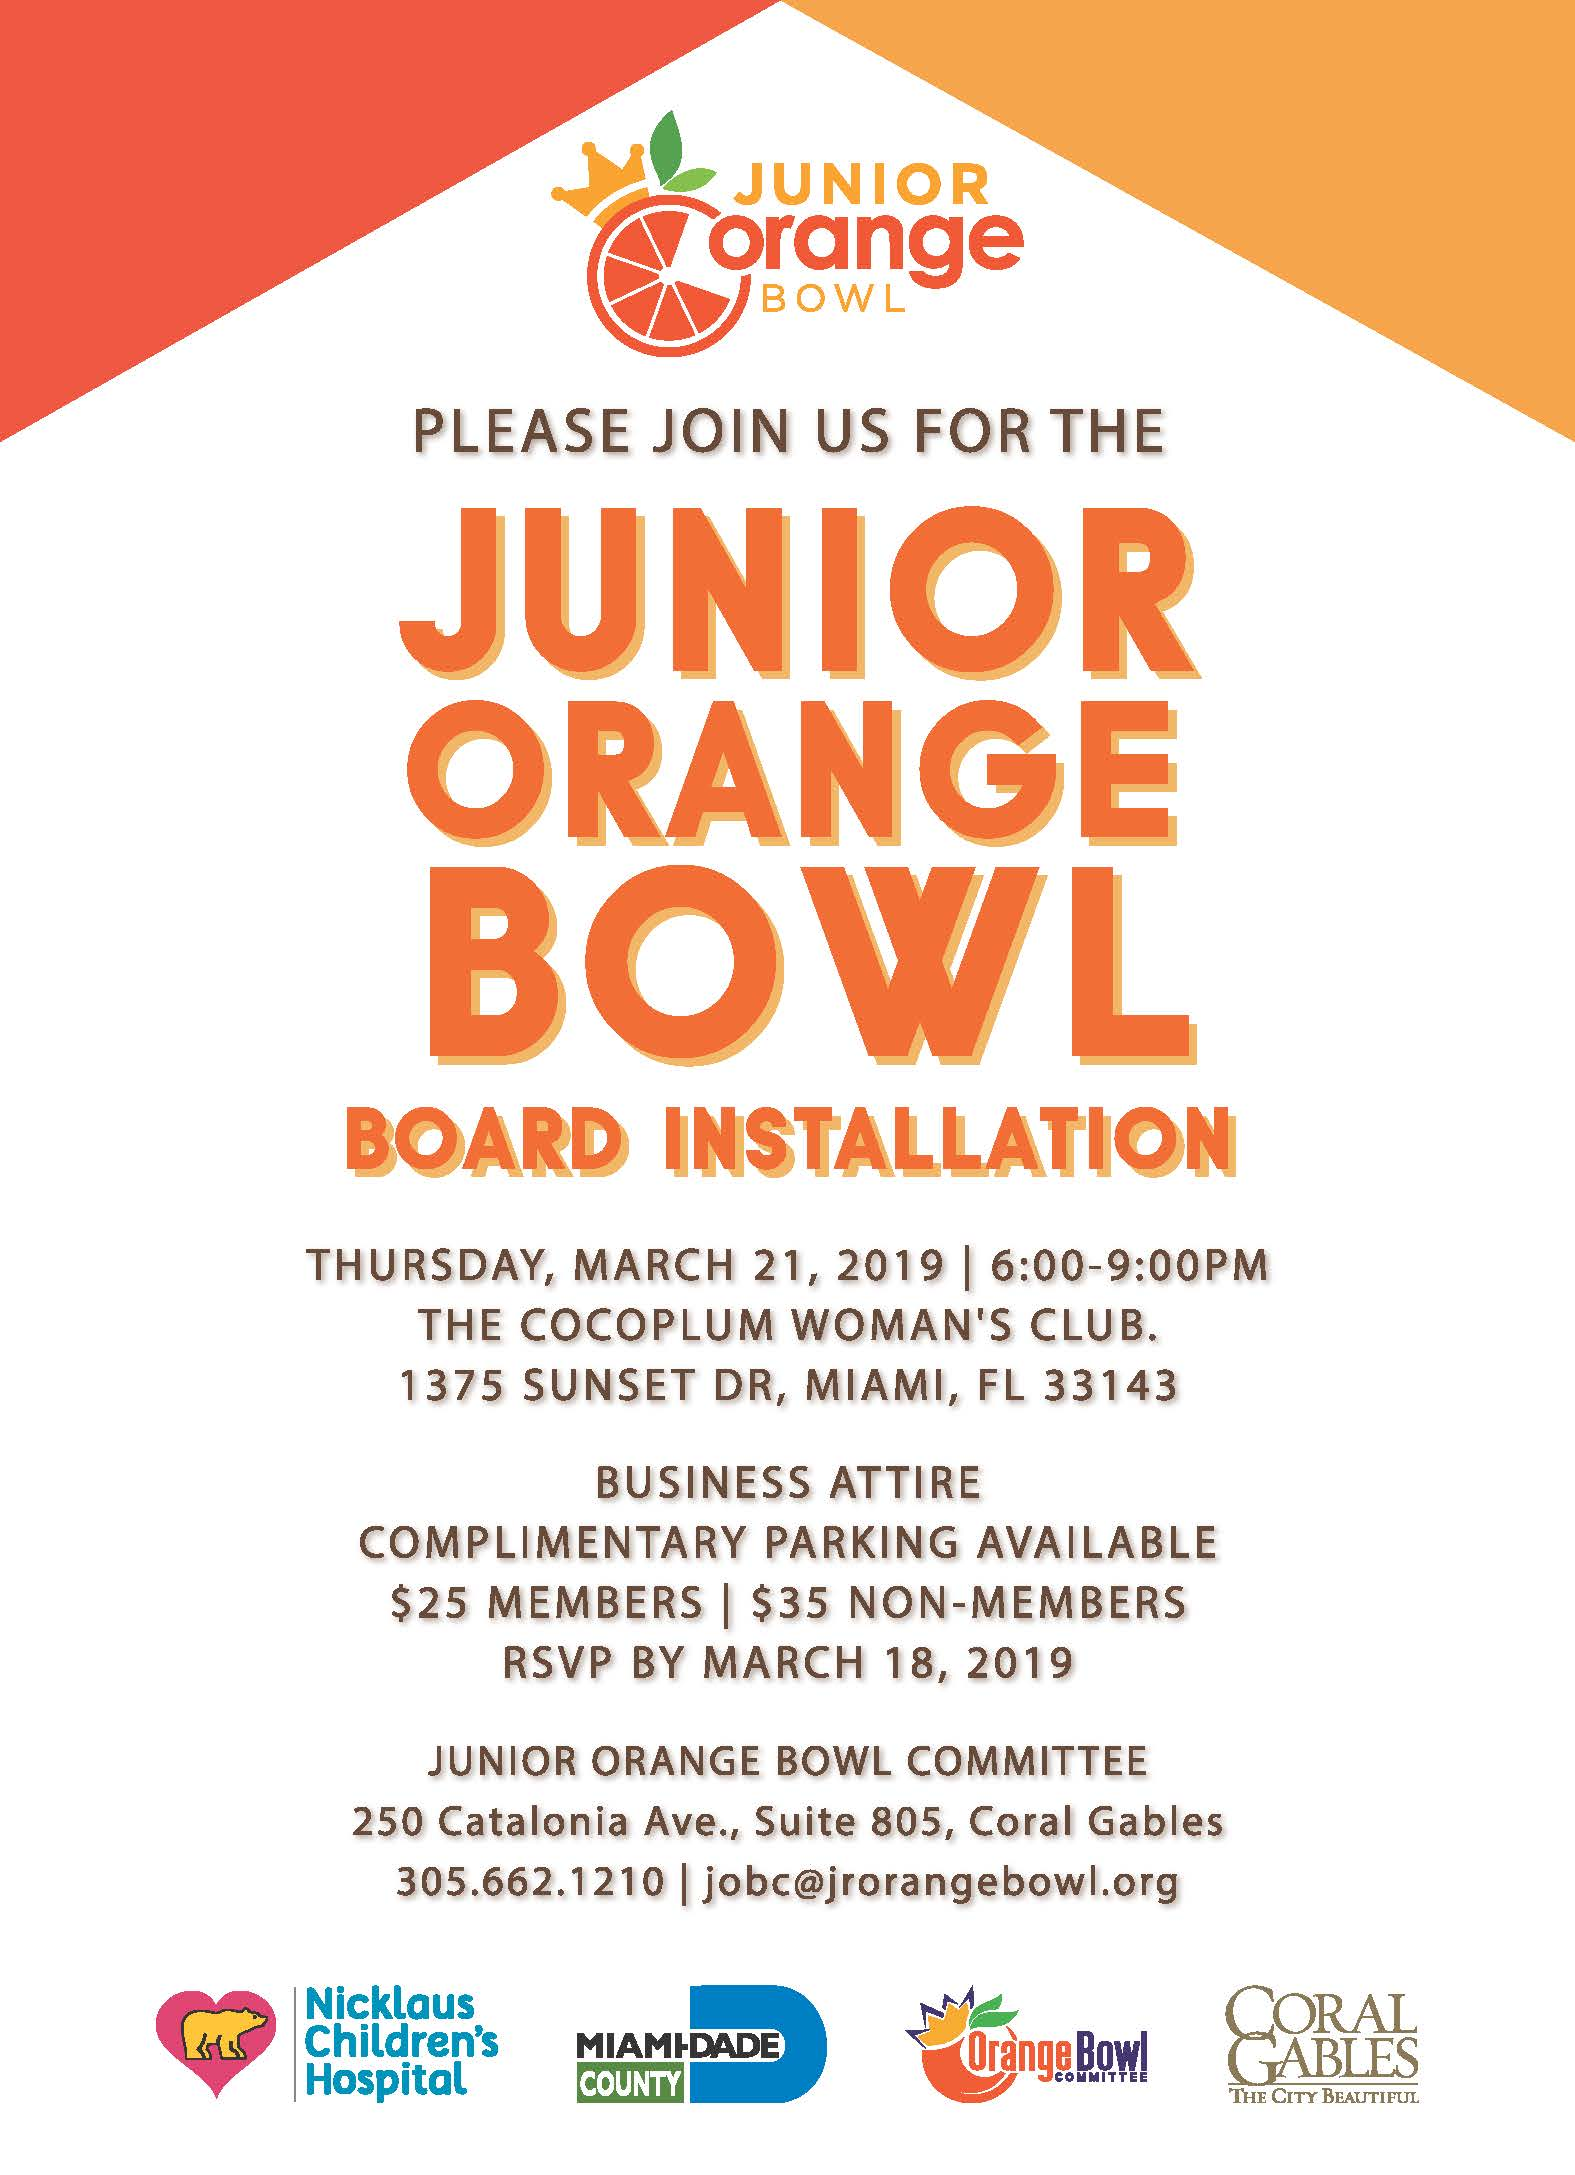 Join Us for the Junior Orange Bowl Board Installation